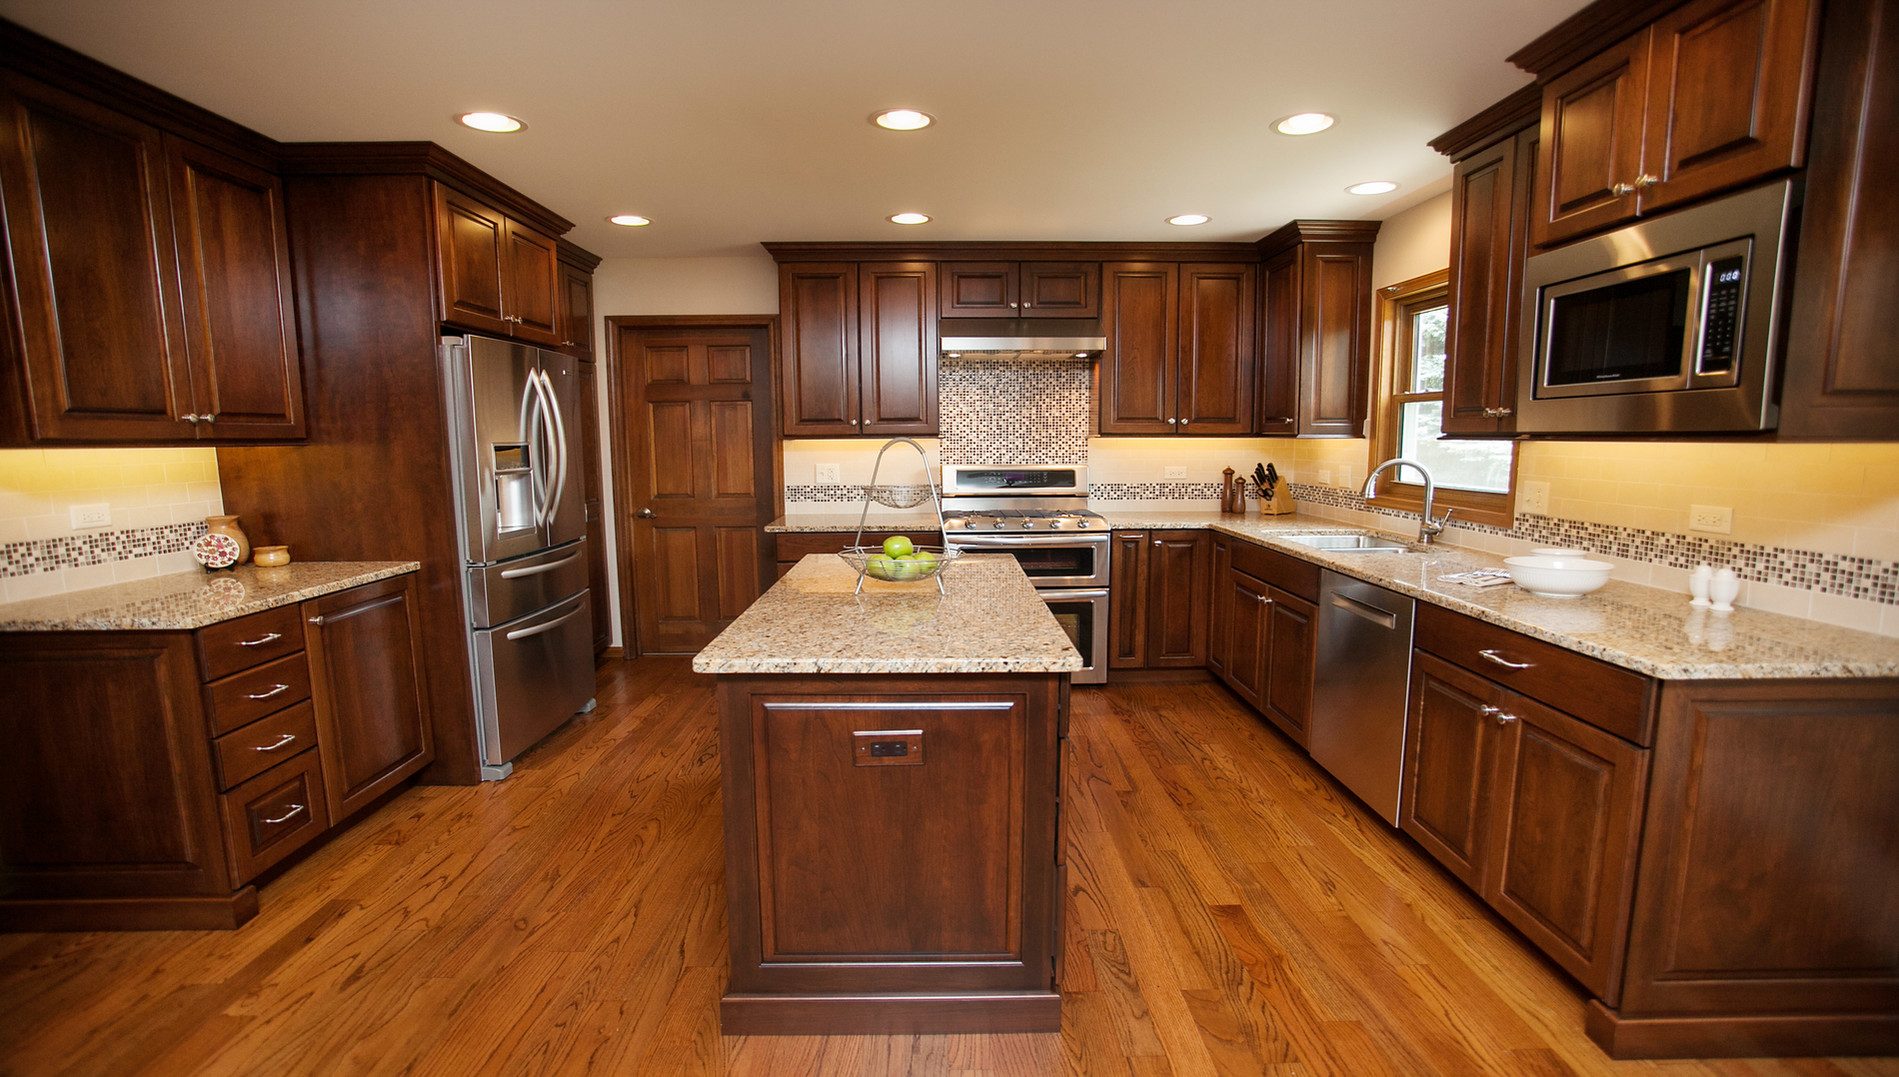 tempting traditional amish kitchen cabinets This elegant kitchen boasts richly finished cherry custom Amish cabinetry ample work space and serving areas